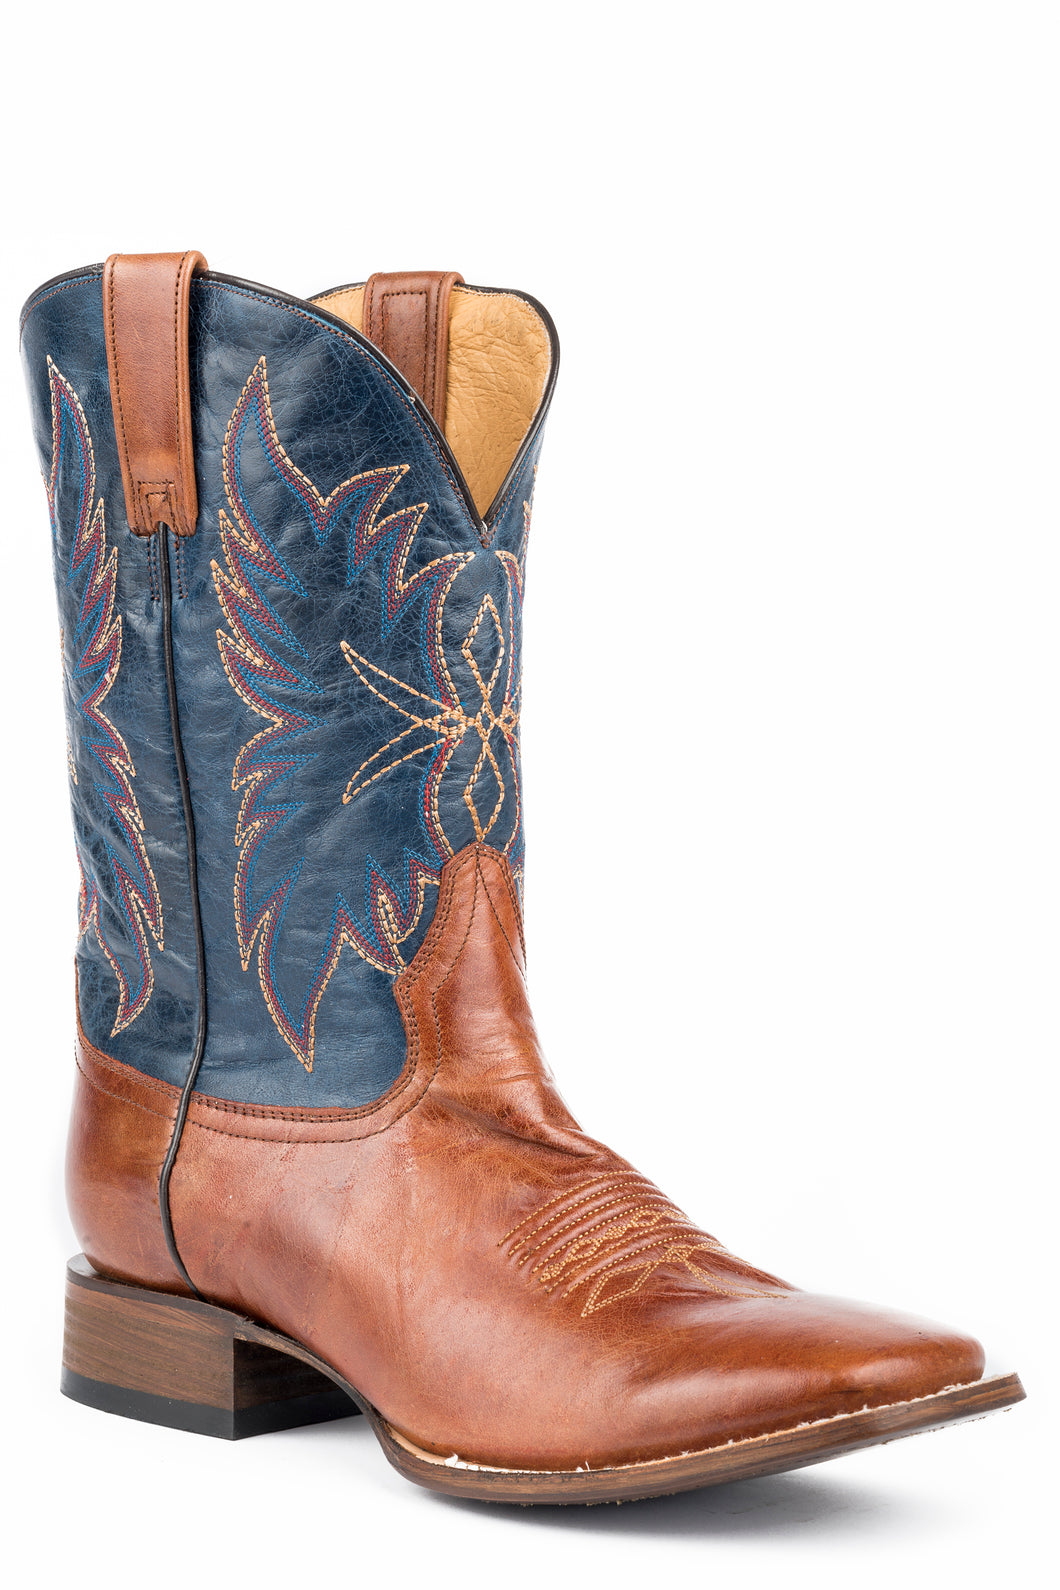 Chisholm Boot Mens Boot Marbled Brown Vamp